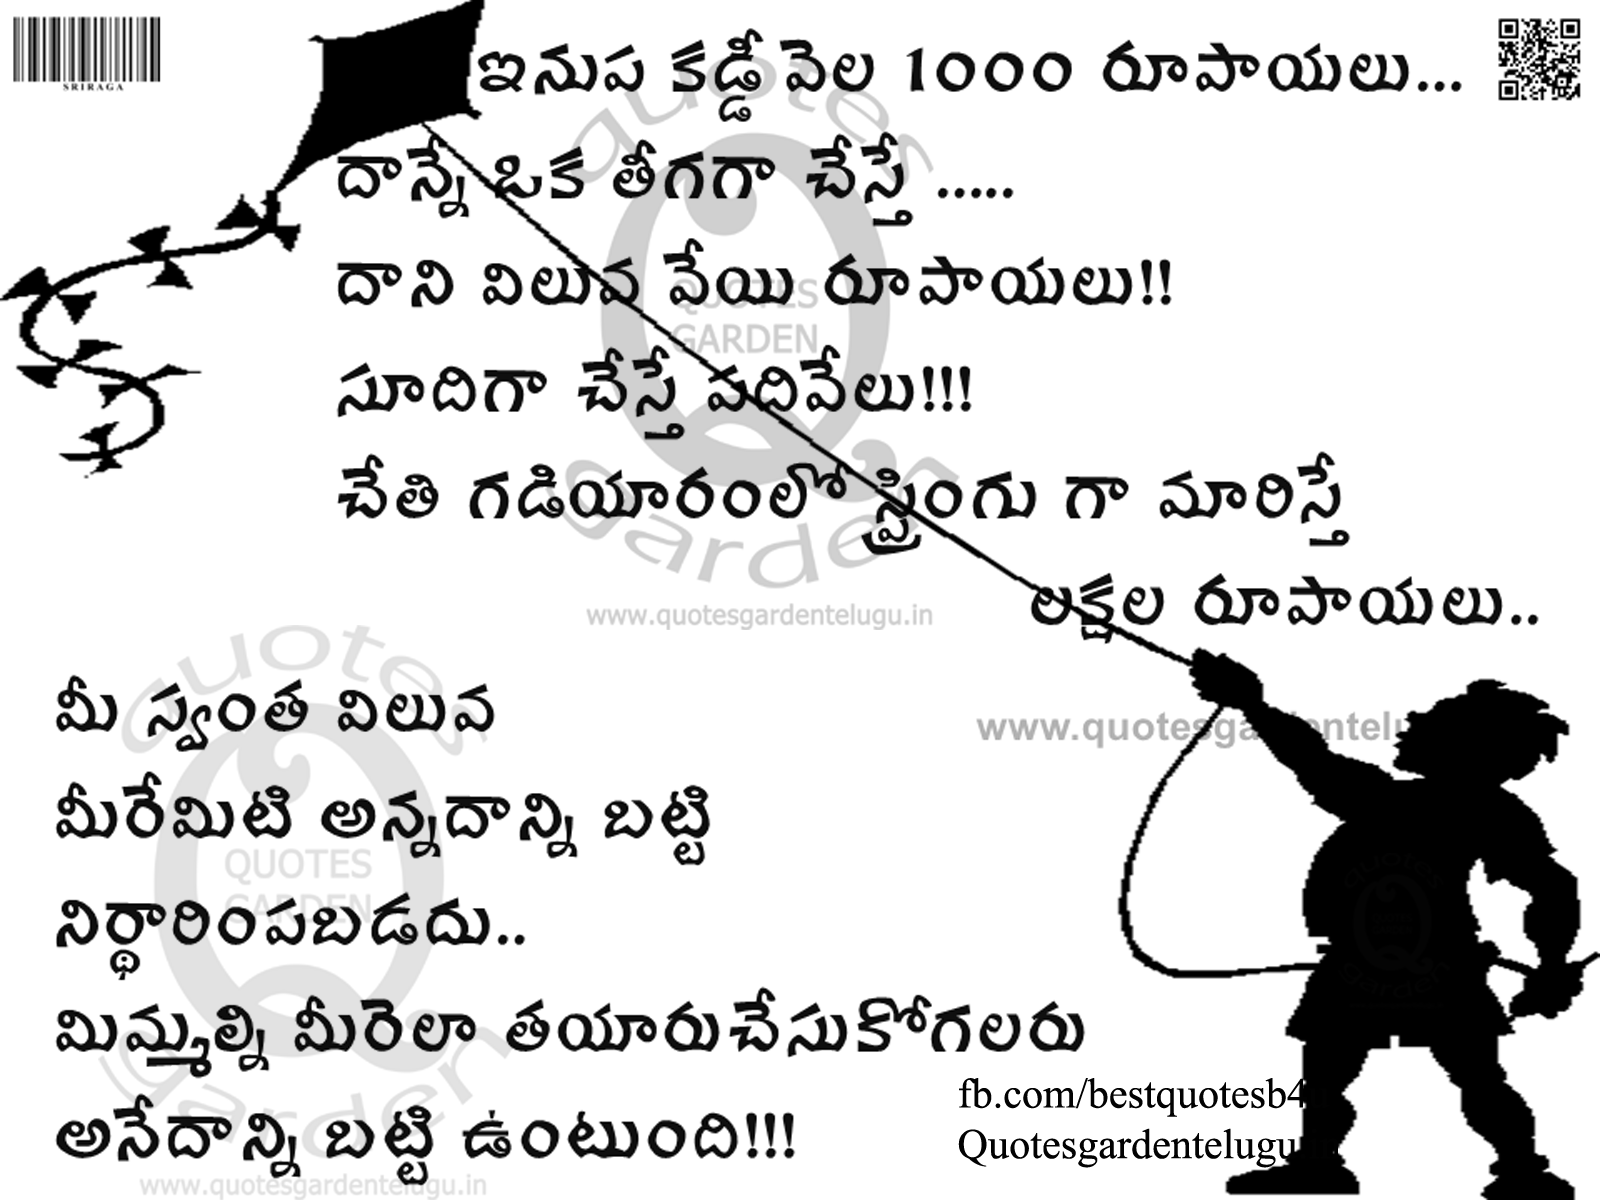 Best telugu life quotes for whatsapp - Best Inspirational quotations for pinterest - Top motivational quotes for face book - Best Telugu life quotes